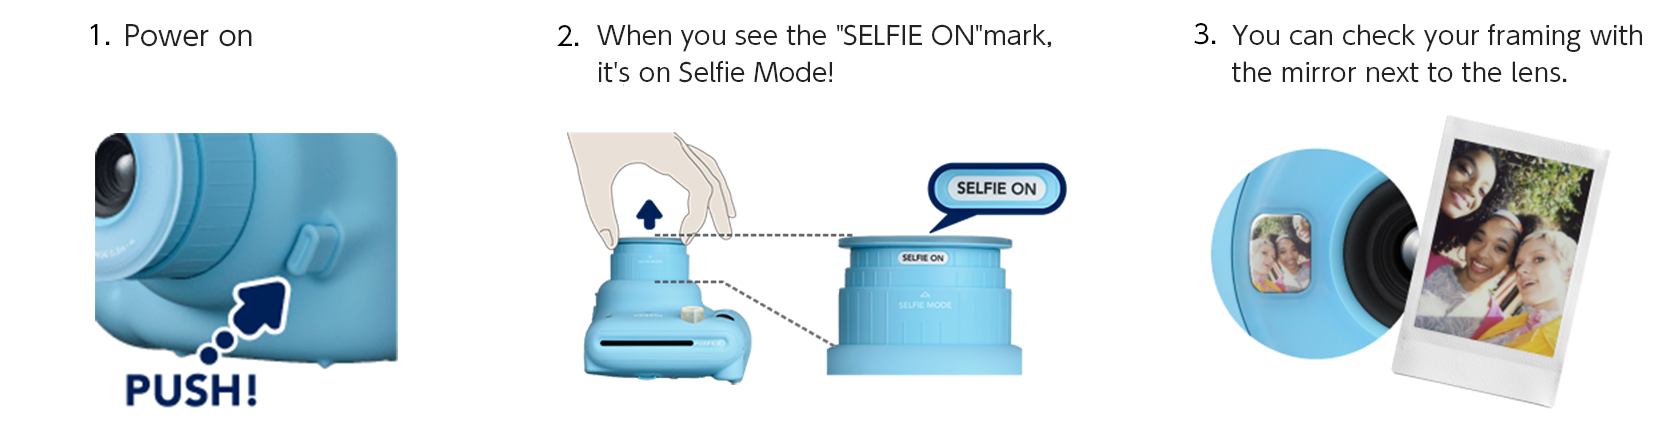 [image] Press power button on side of lens, twist lens to turn Selfie Mode on, and use small mirror next to lens to check framing of photo